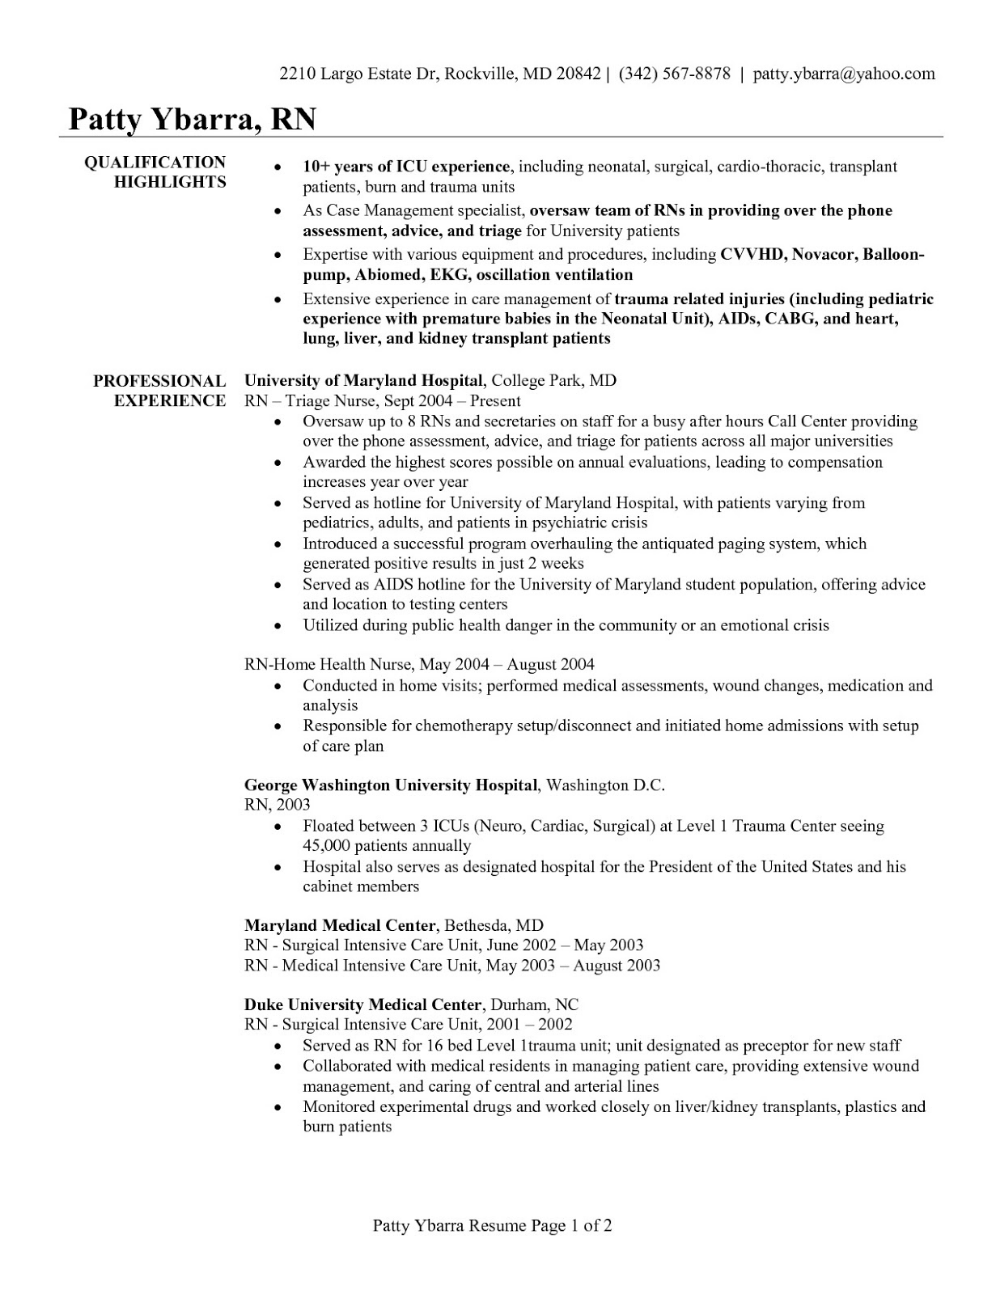 Resume Format 2020 Template